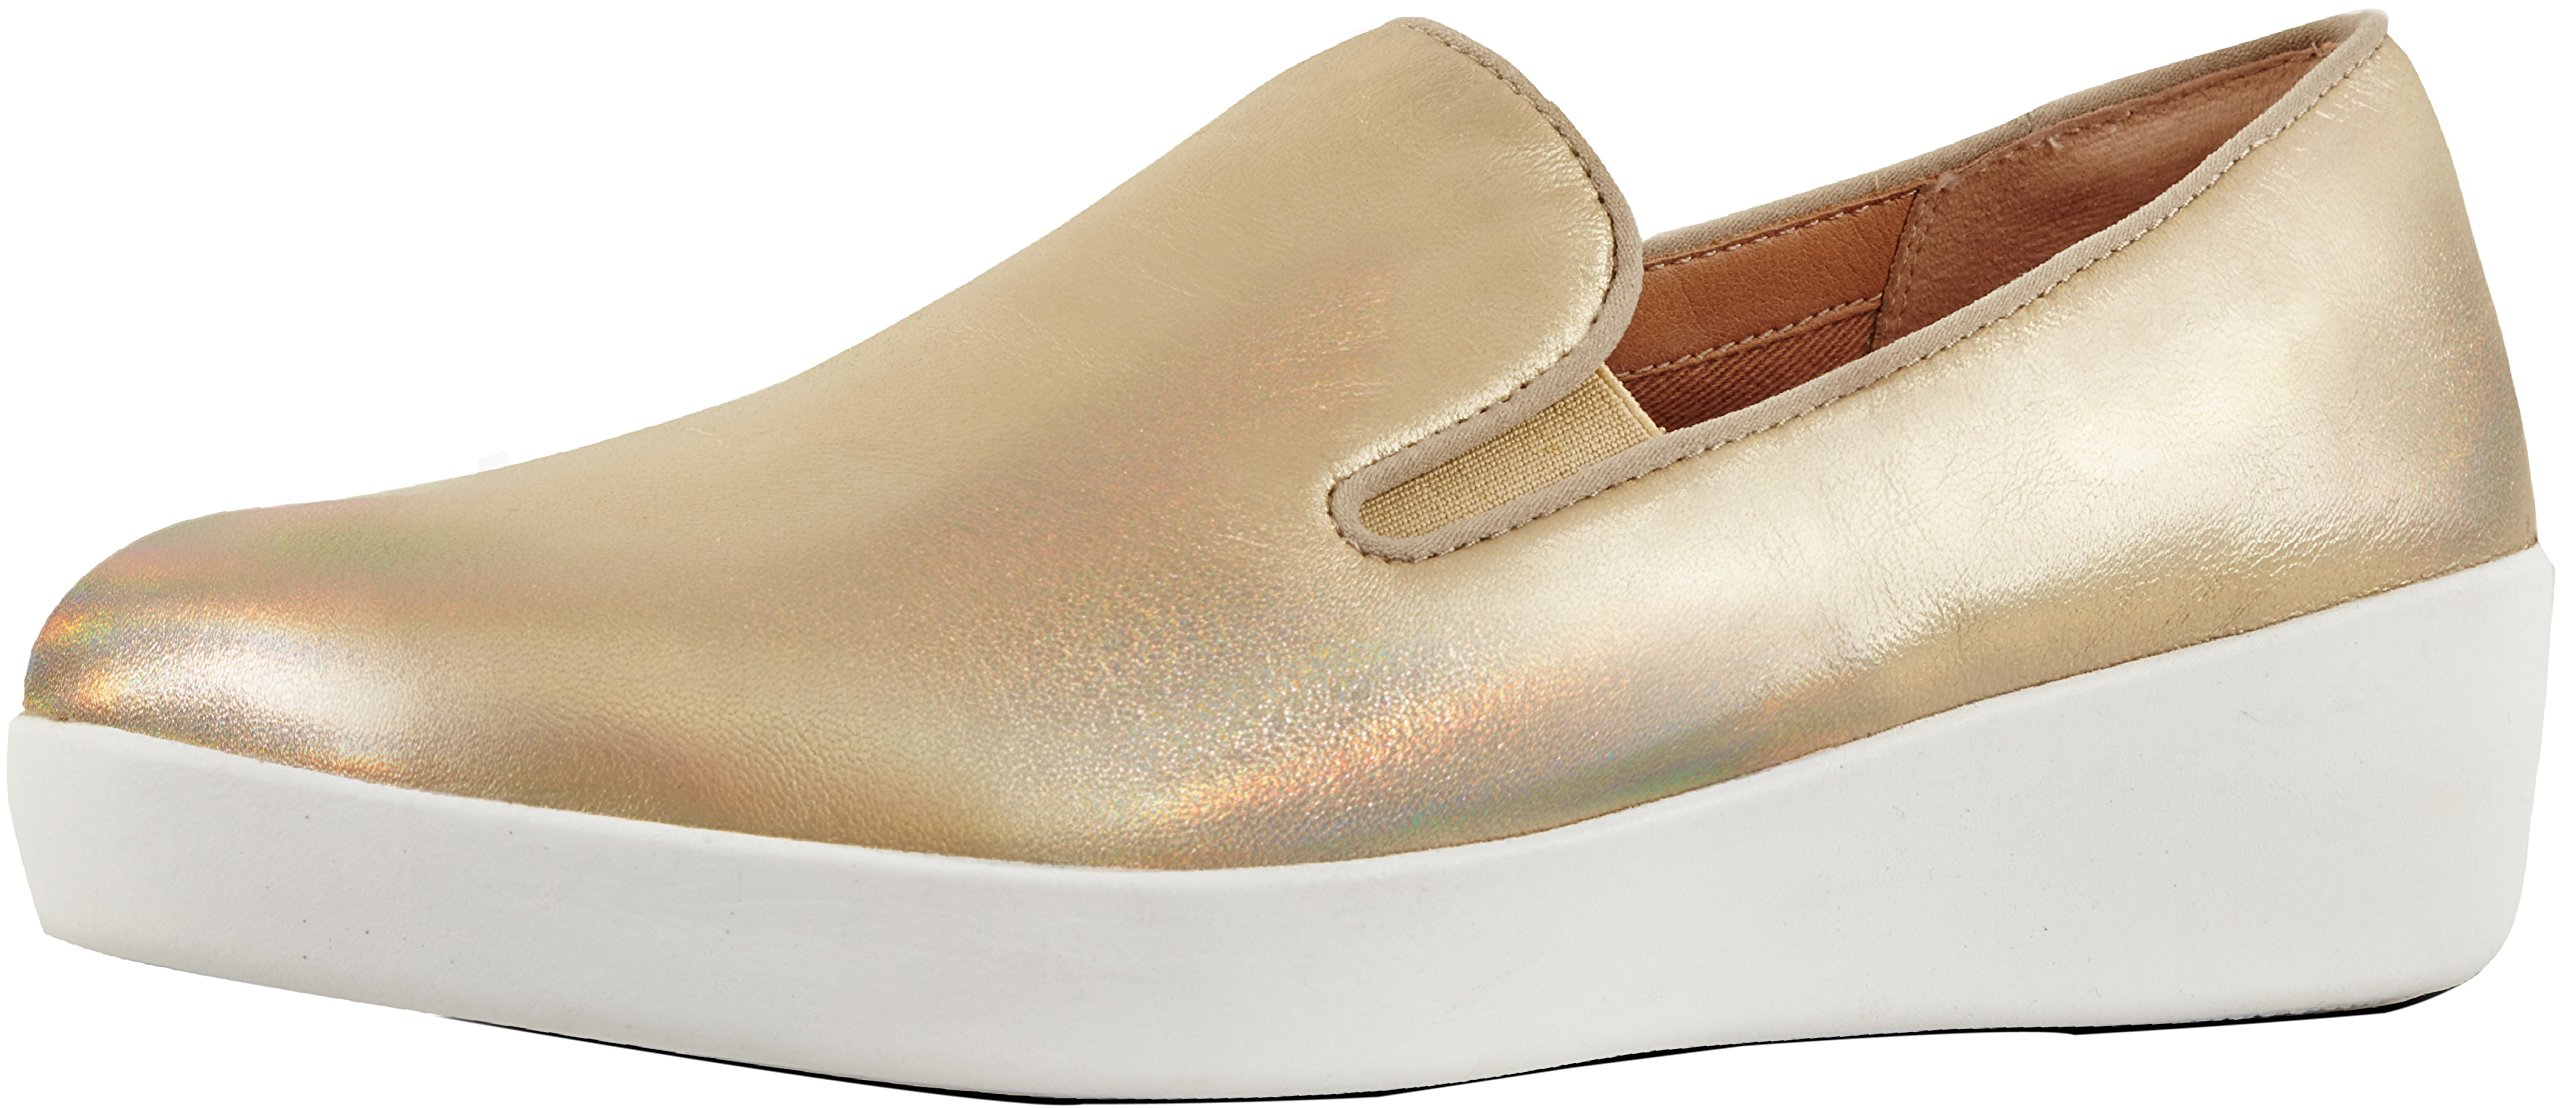 FitFlop Women's Superskate Sneaker, Gold Iridescent, 7.5 M US